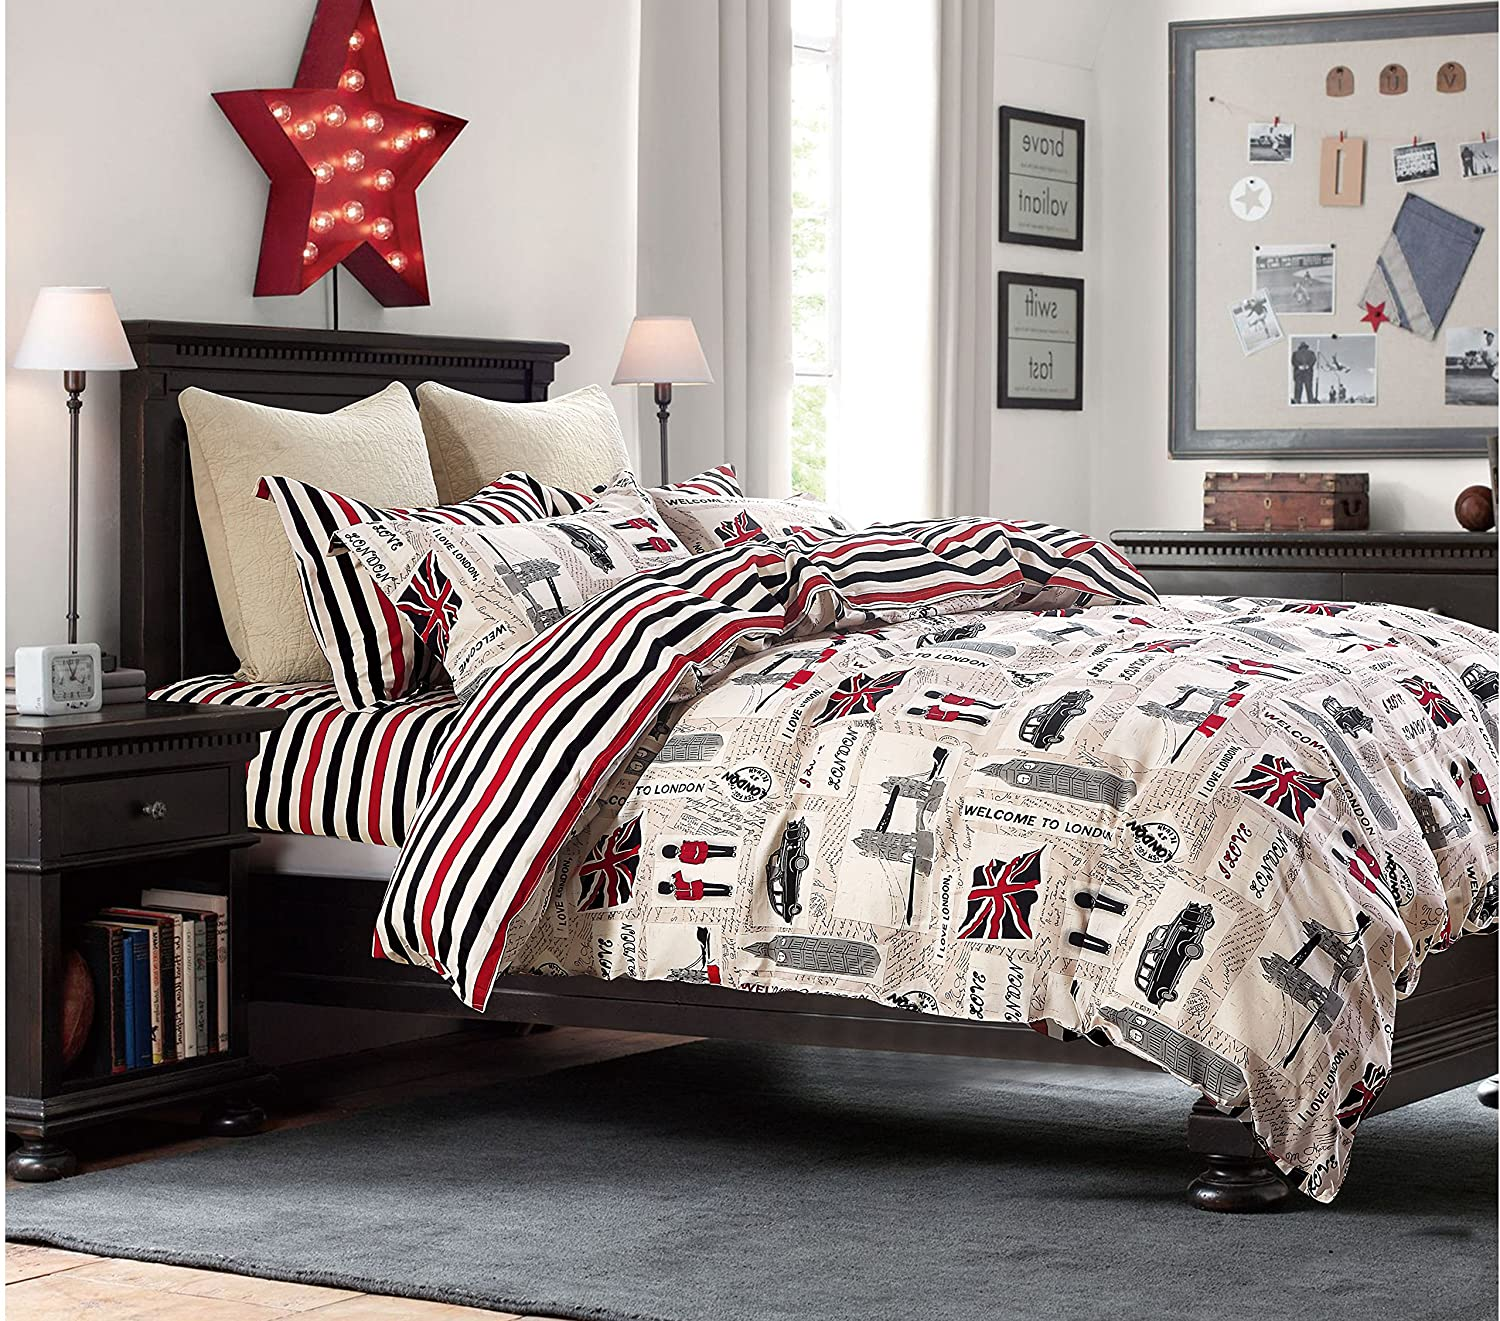 Cliab London Bedding Full Union Jack Flag Vintage